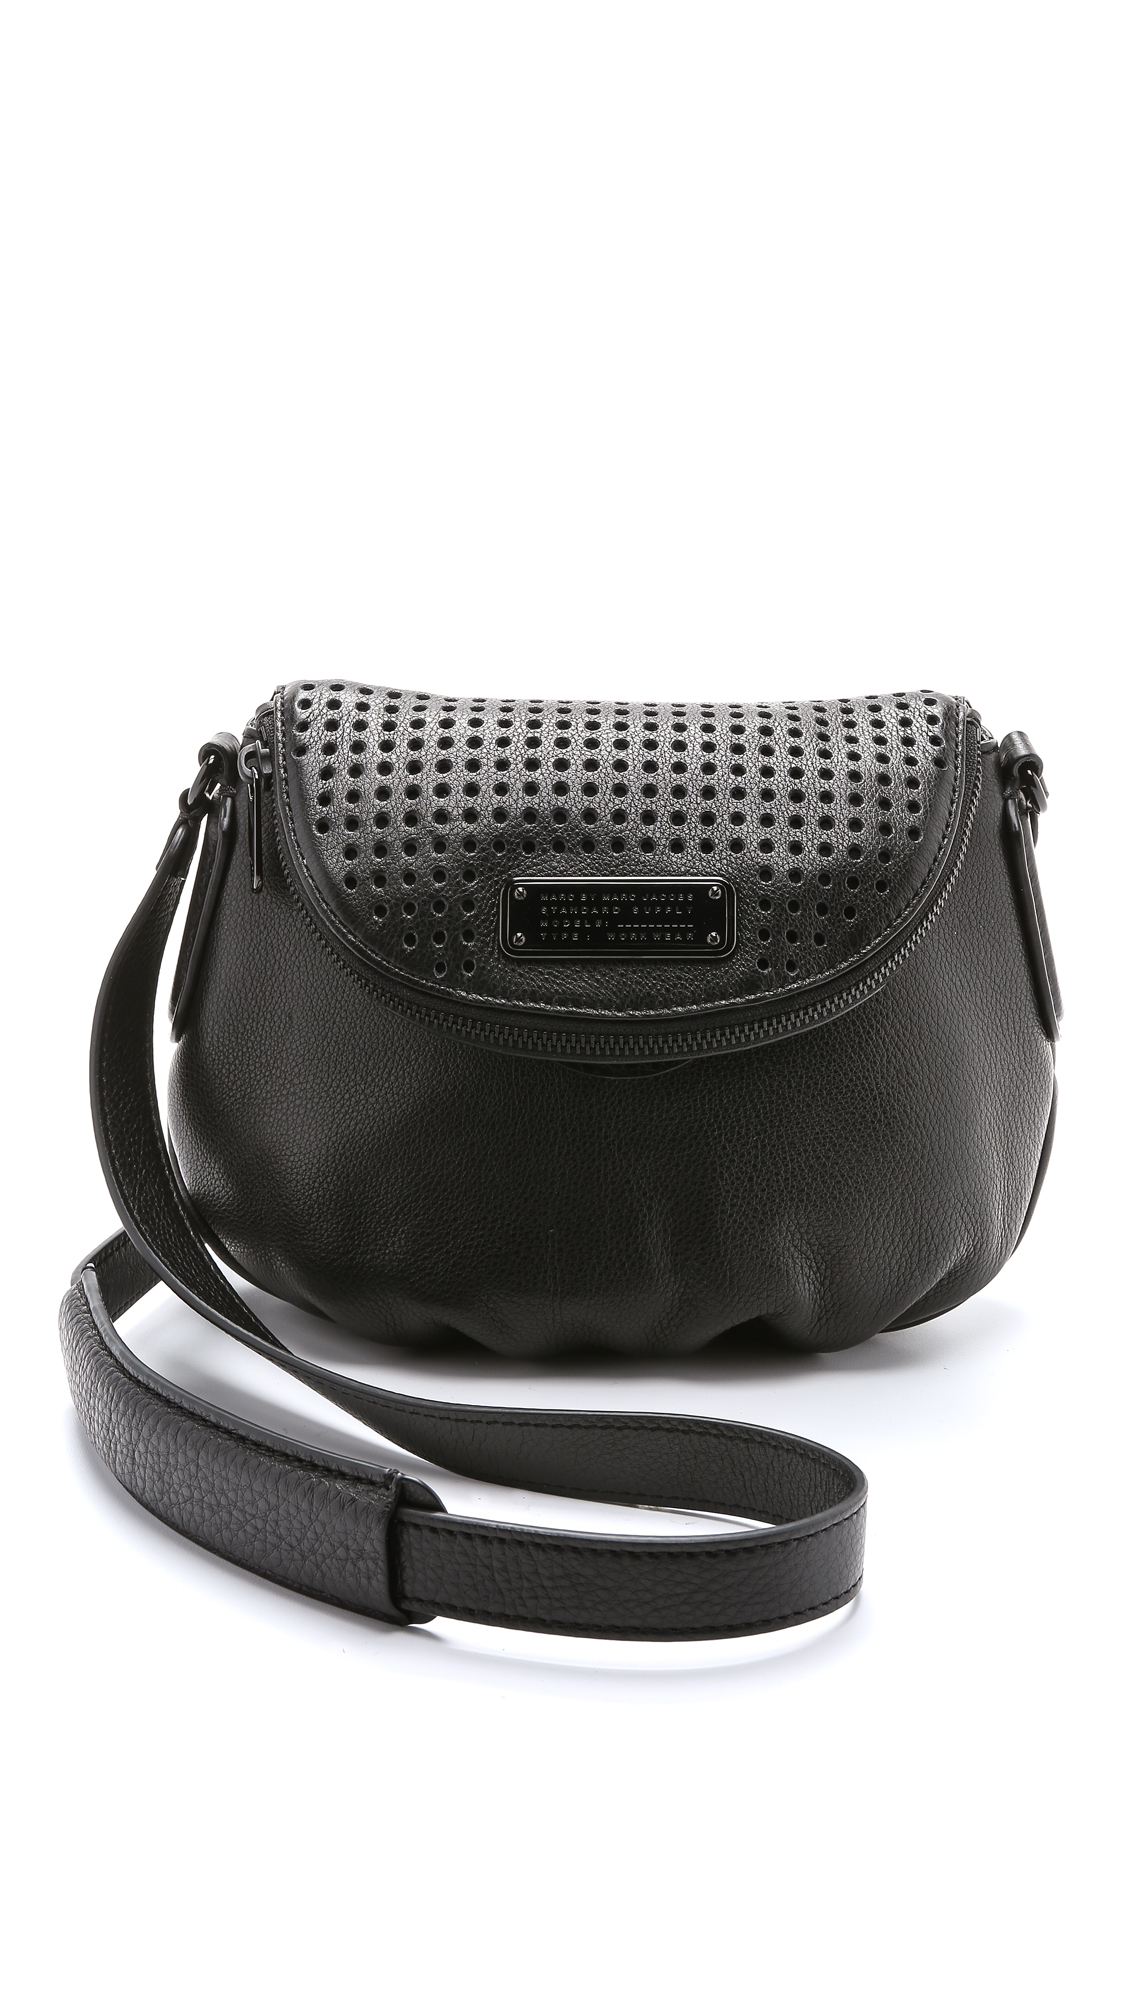 5bfbeb94328f Marc by Marc Jacobs New Q Perforated Mini Natasha Bag